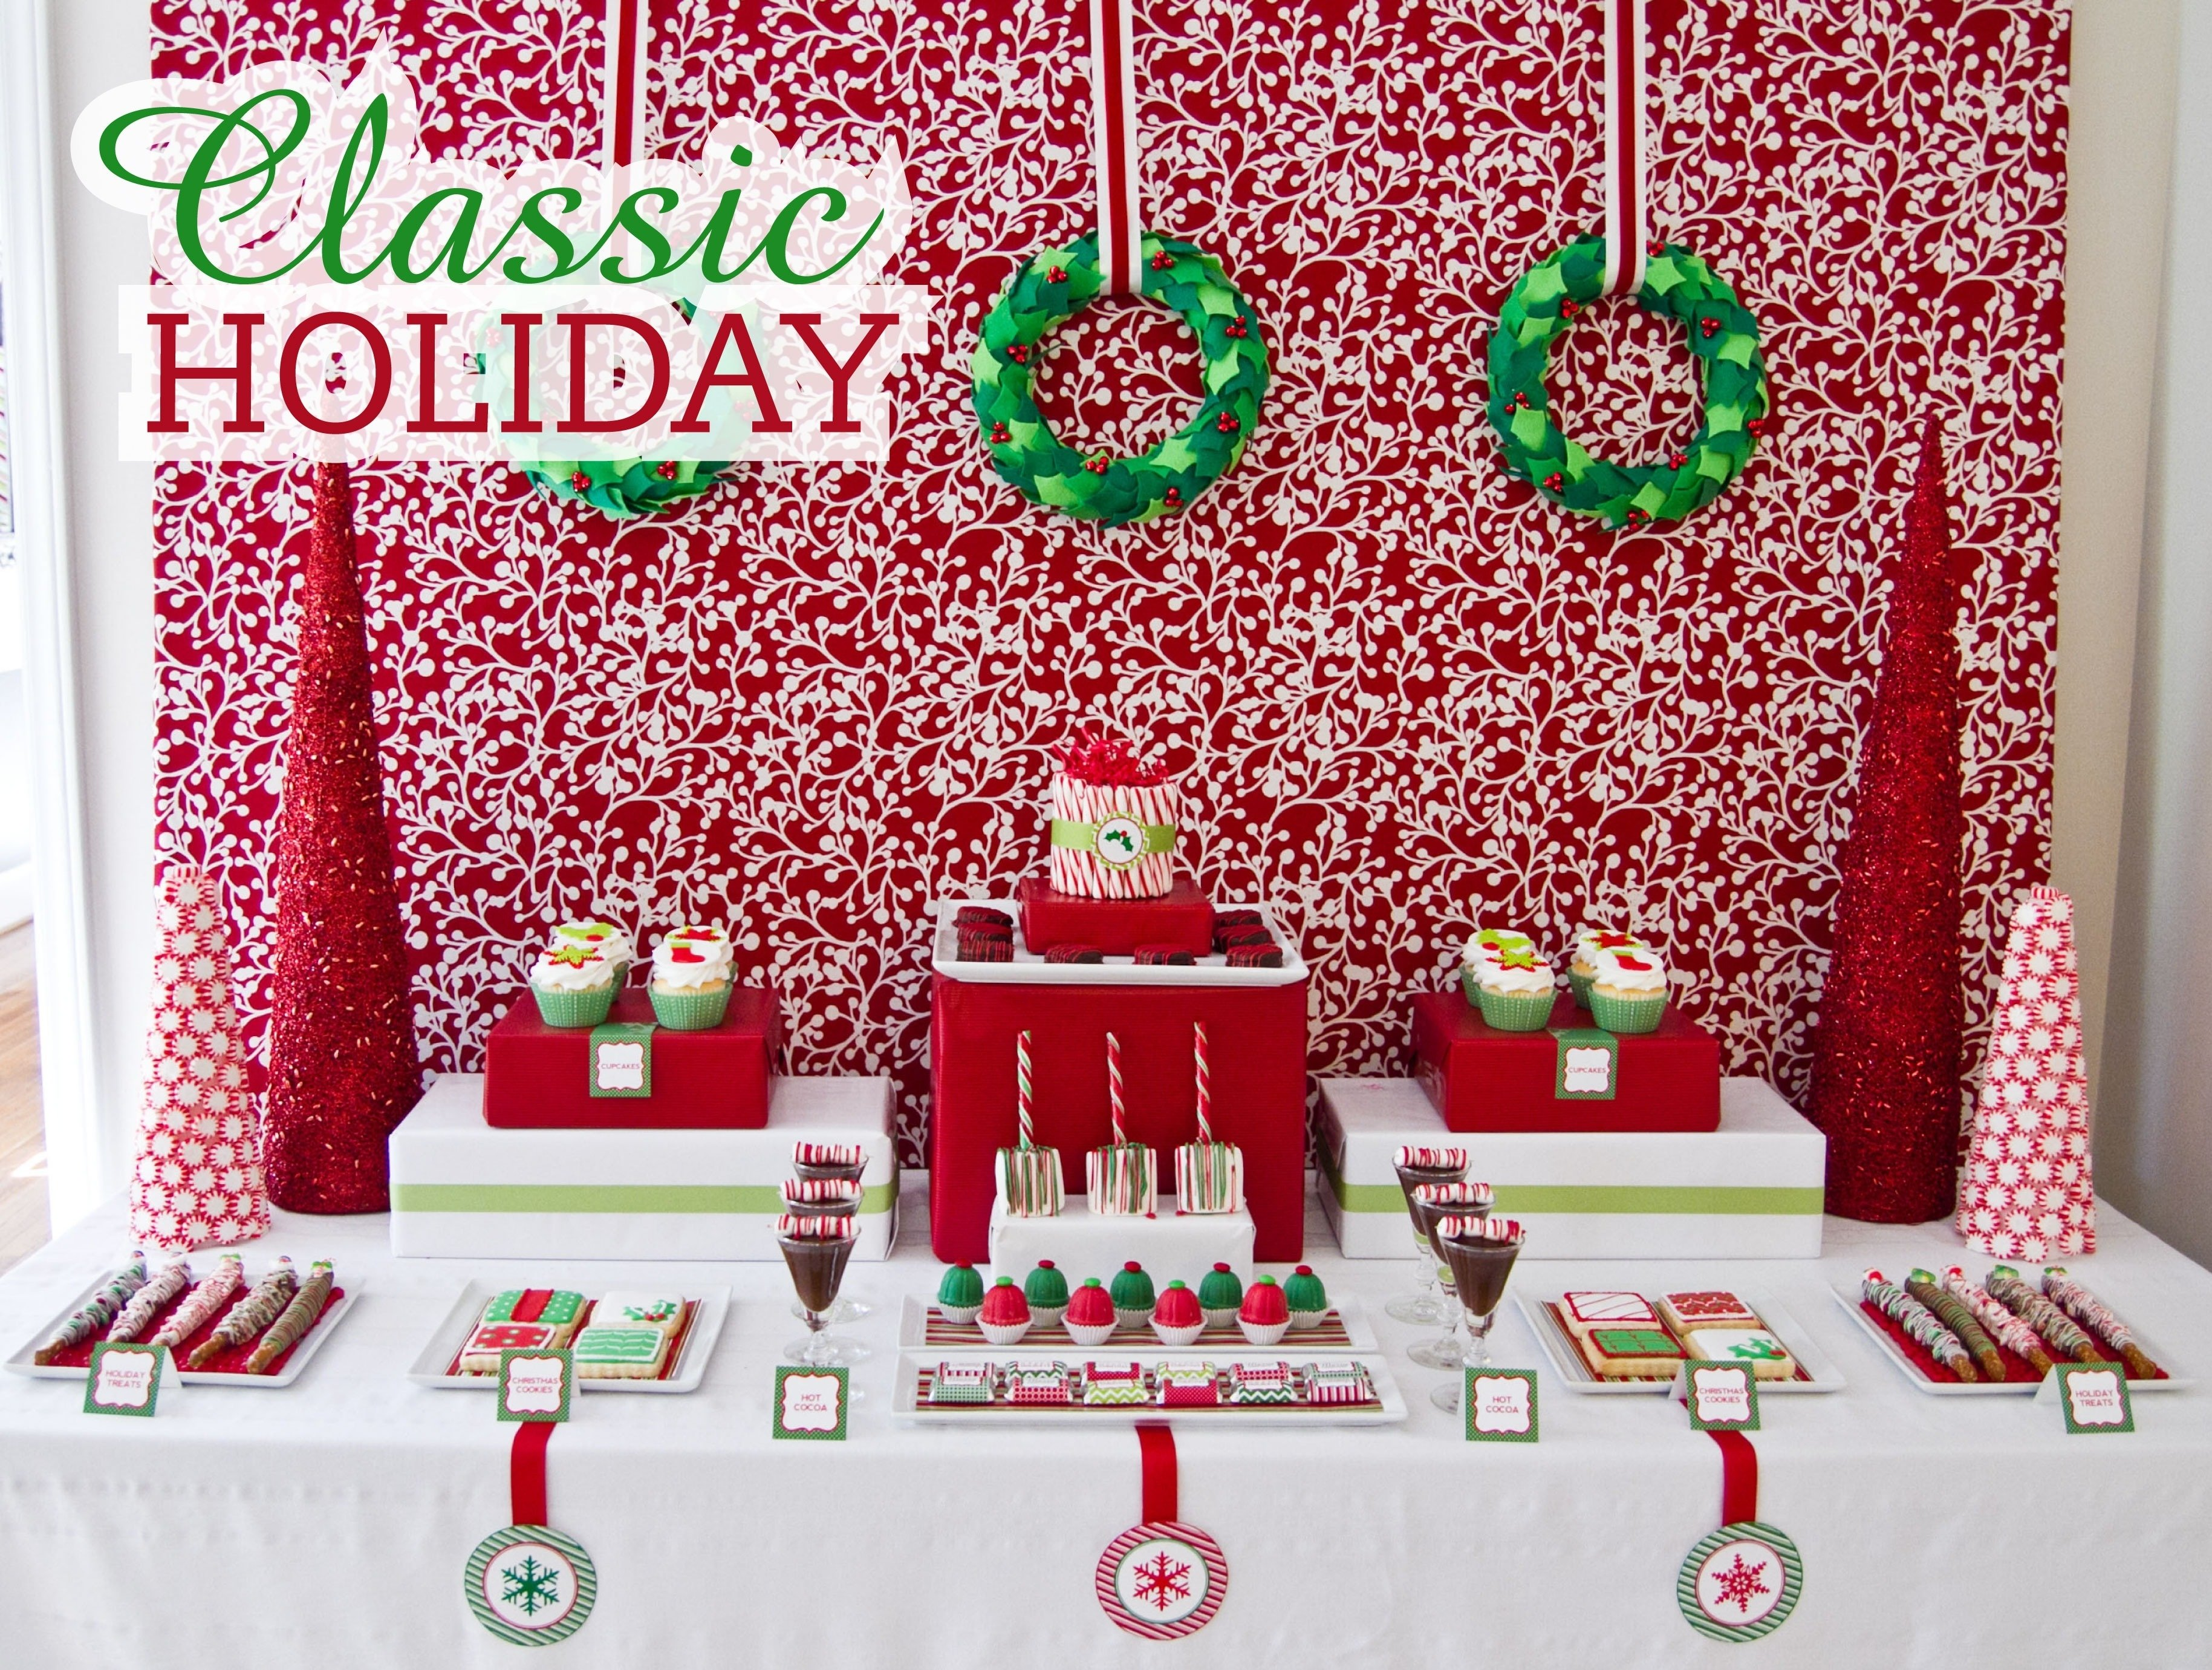 10 Ideal Ideas For Office Christmas Parties ideas about office birthday decorations on pinterest giant paper 2 2020